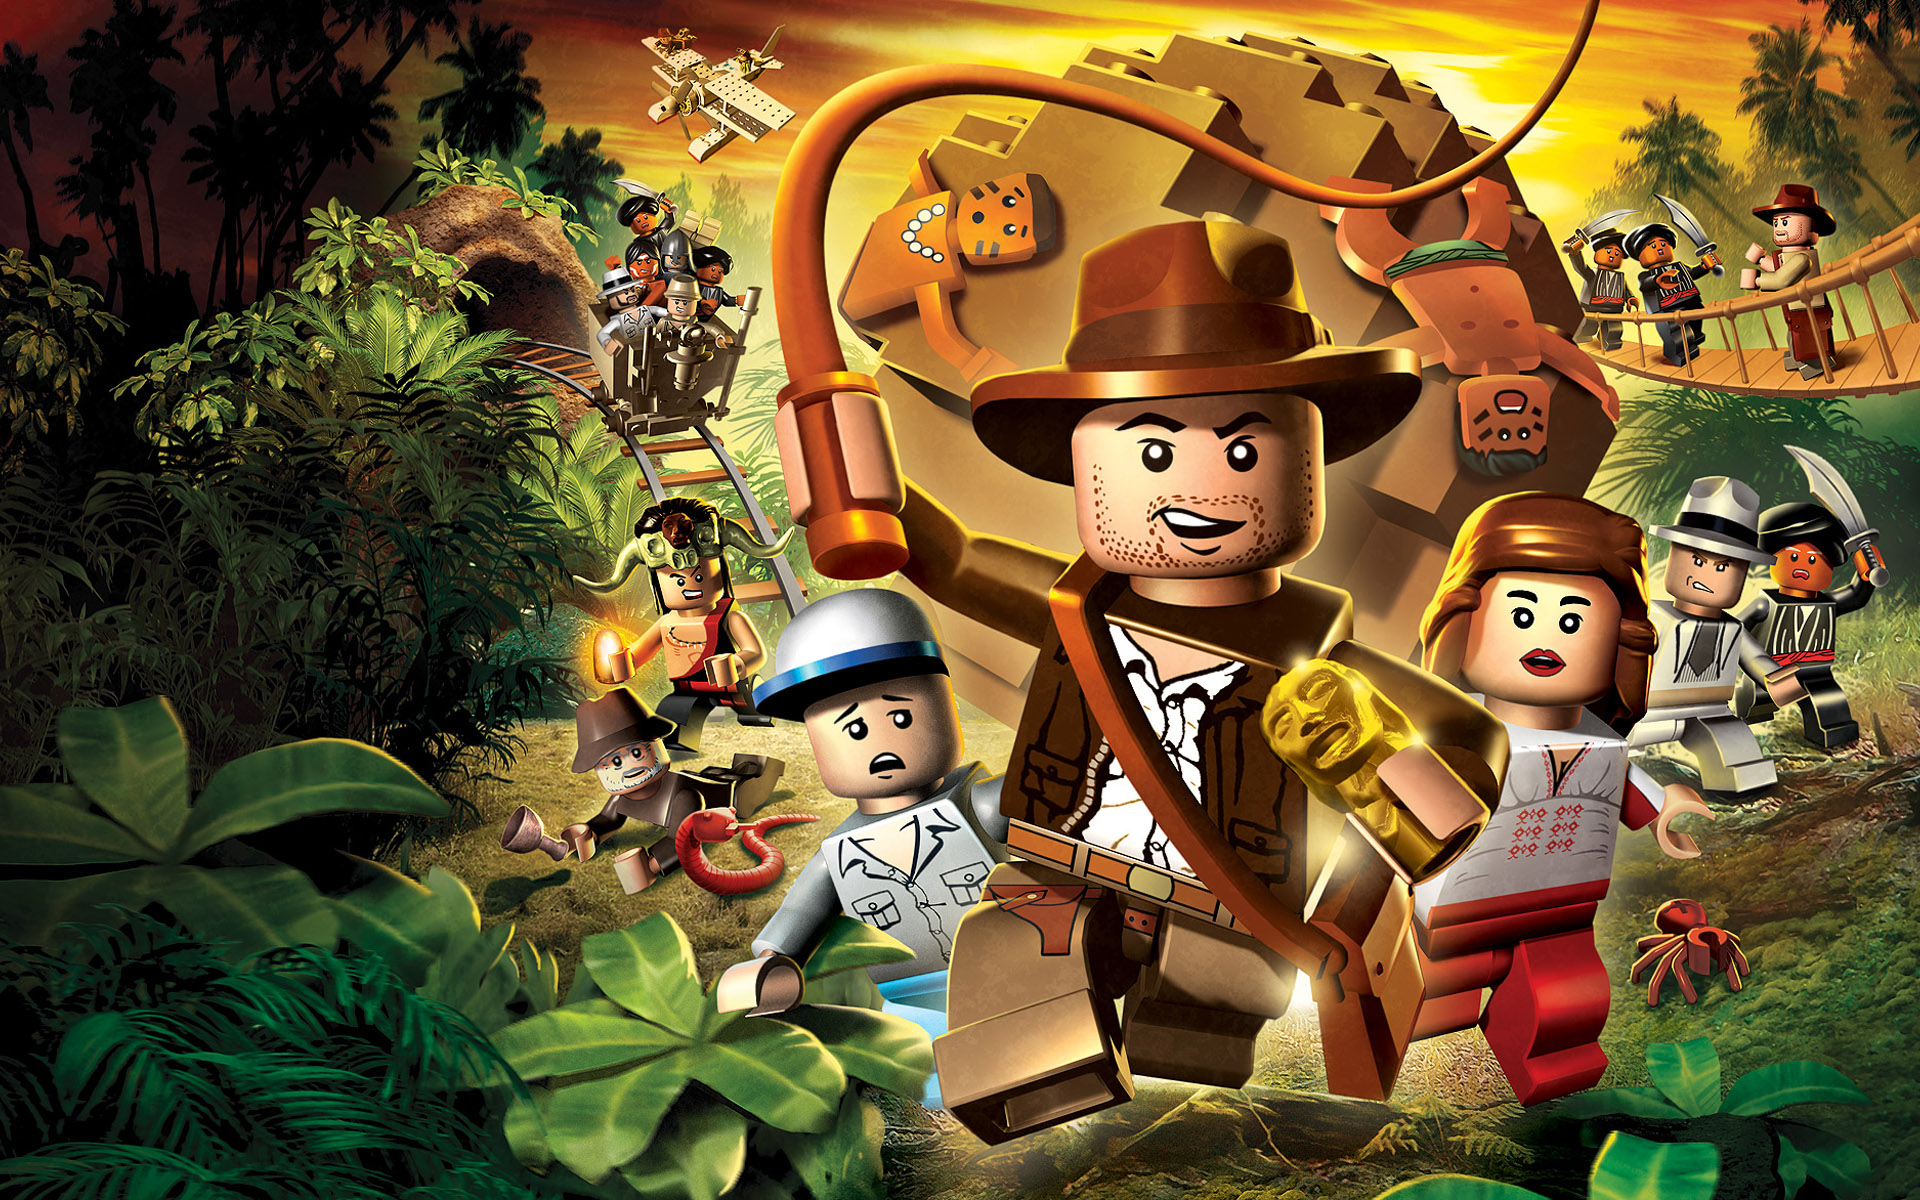 Indiana Jones Lego Version - Indiana Jones Lego Version